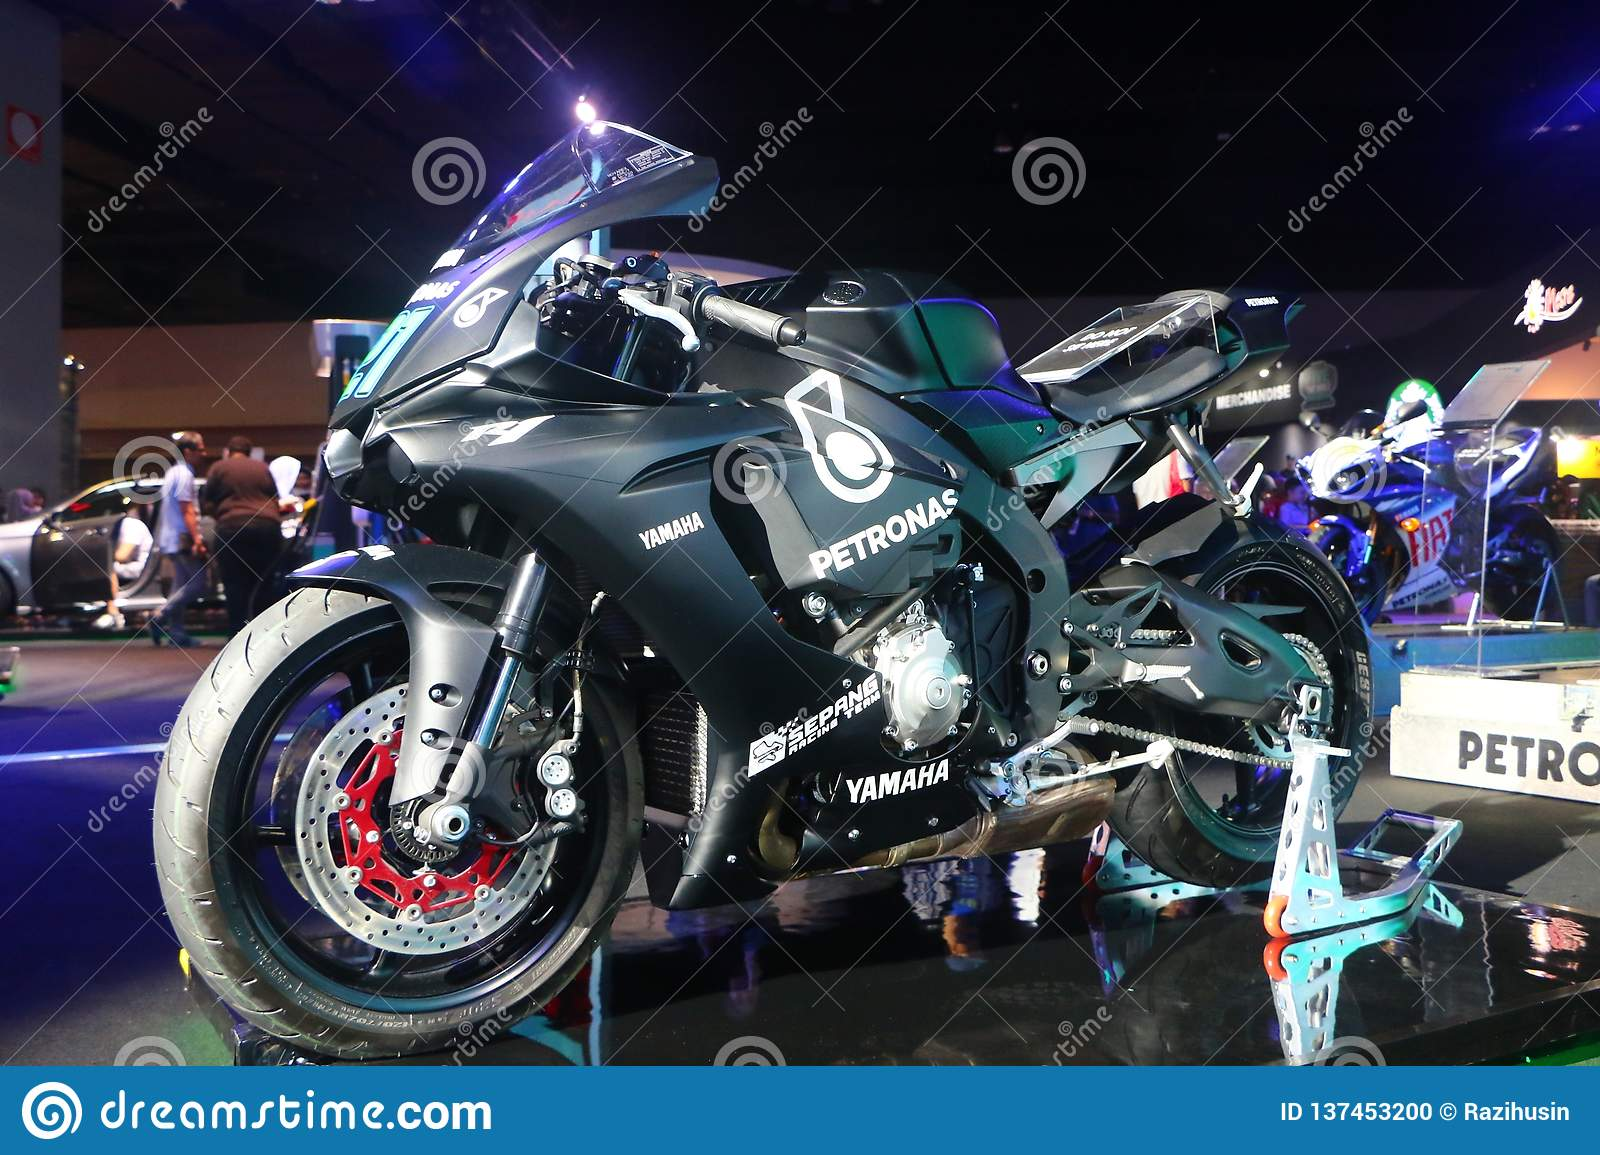 The Petronas Yamaha Yzr M1 No 21 Ridden By Franco Morbidelli From Sic Racing Team During Editorial Image Image Of Show Power 137453200